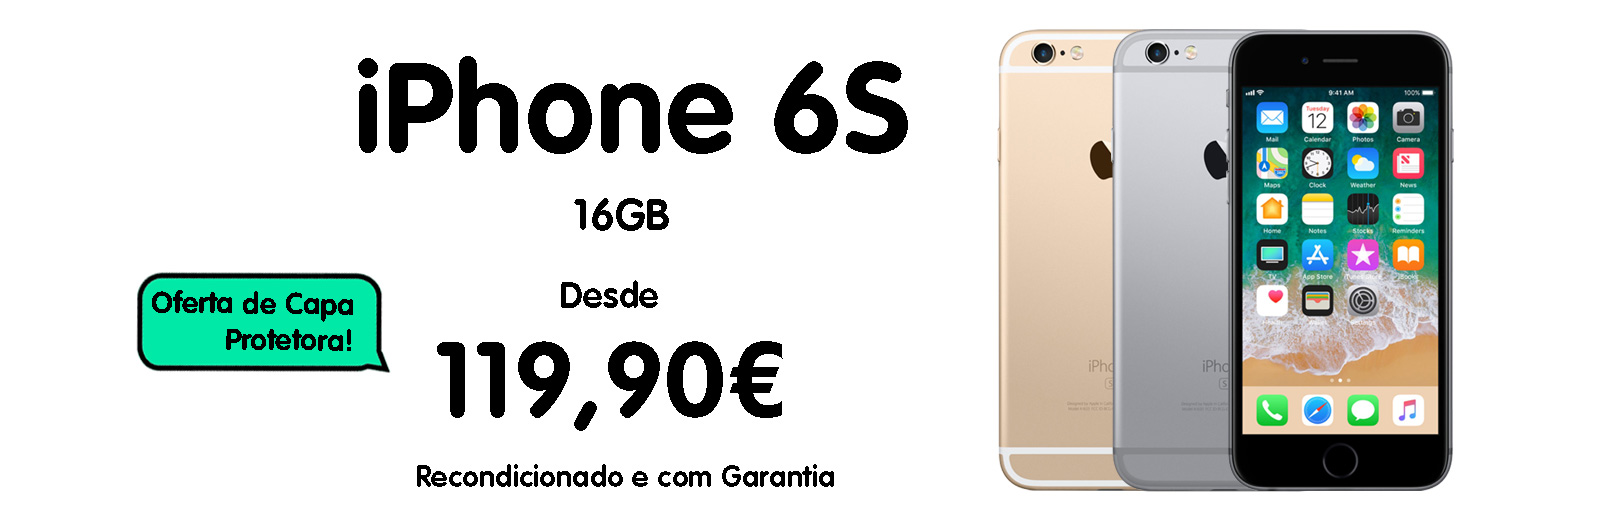 iphone 6s 16GB banner